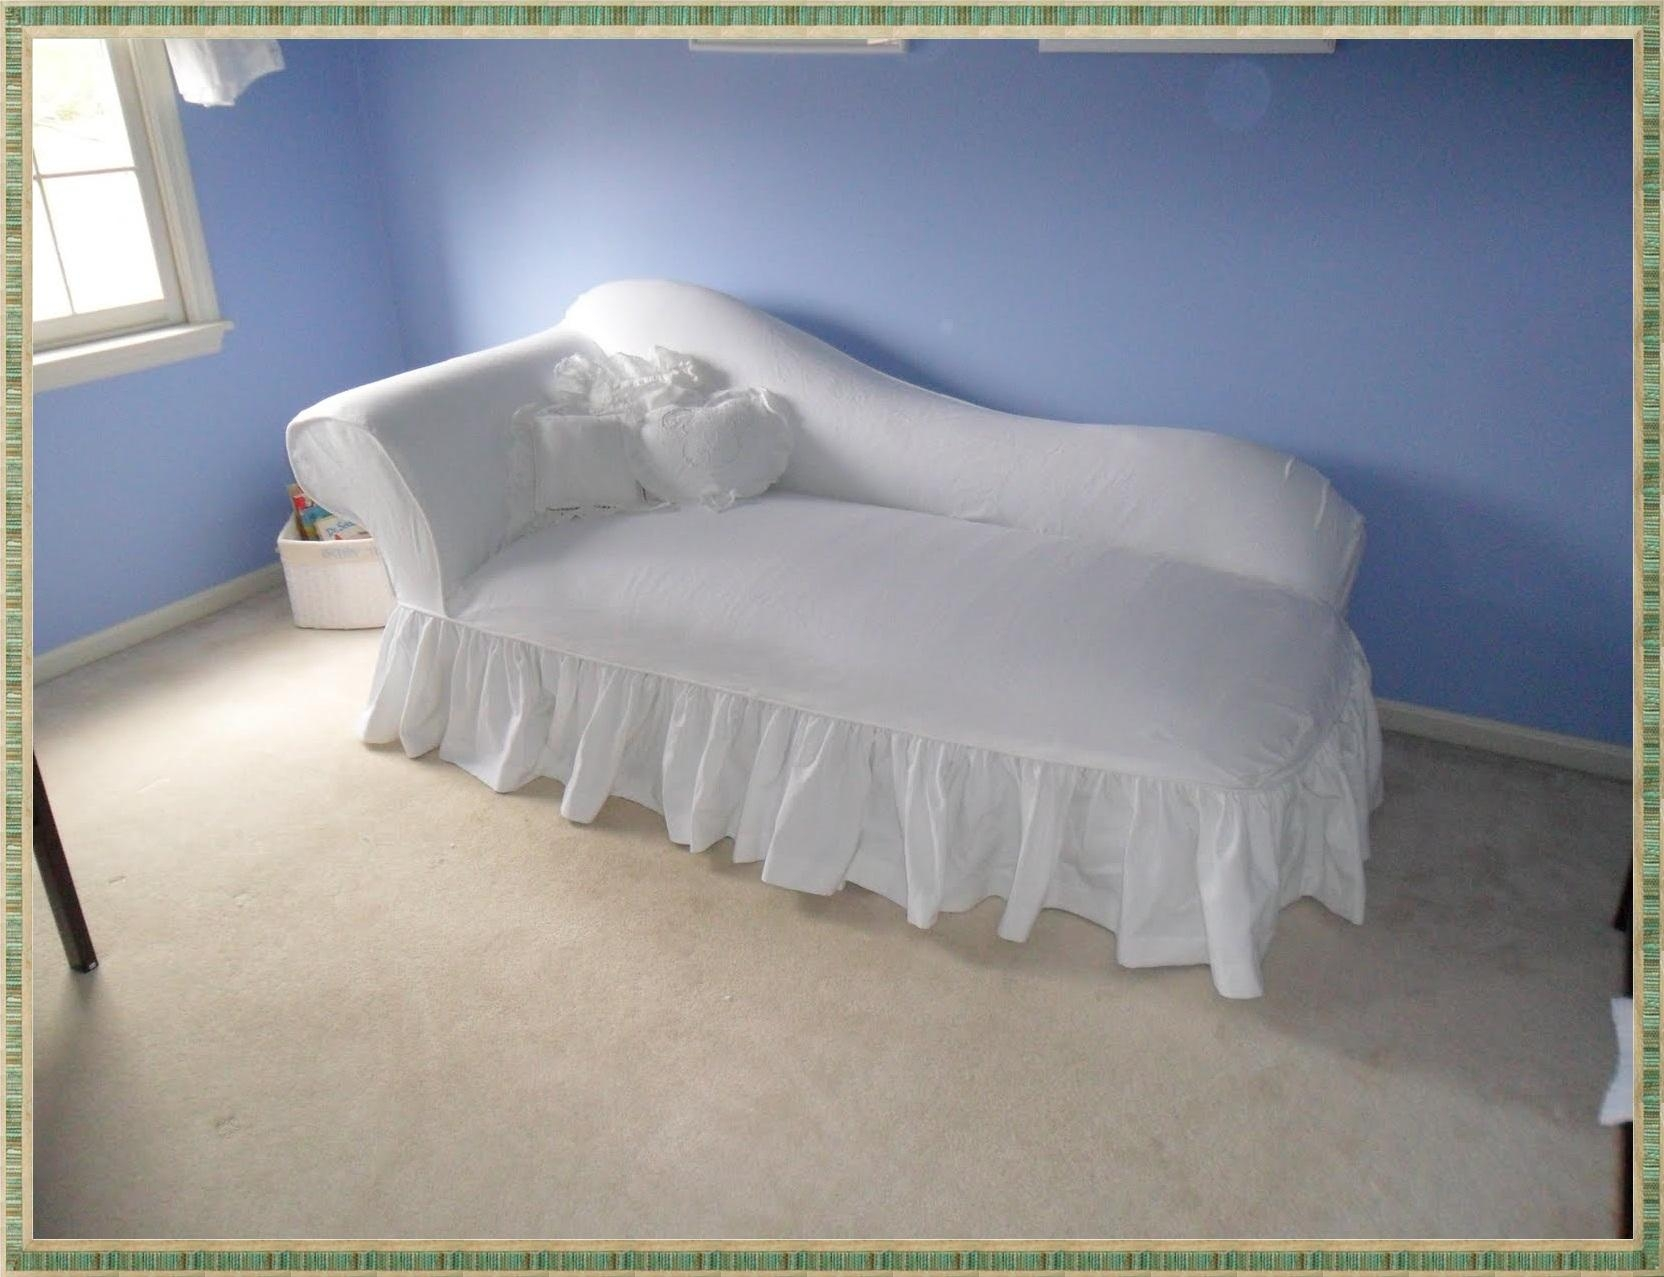 Chaise Lounge Slipcover | Home Decorations Ideas Intended For Slipcovered Chaises (Image 1 of 20)